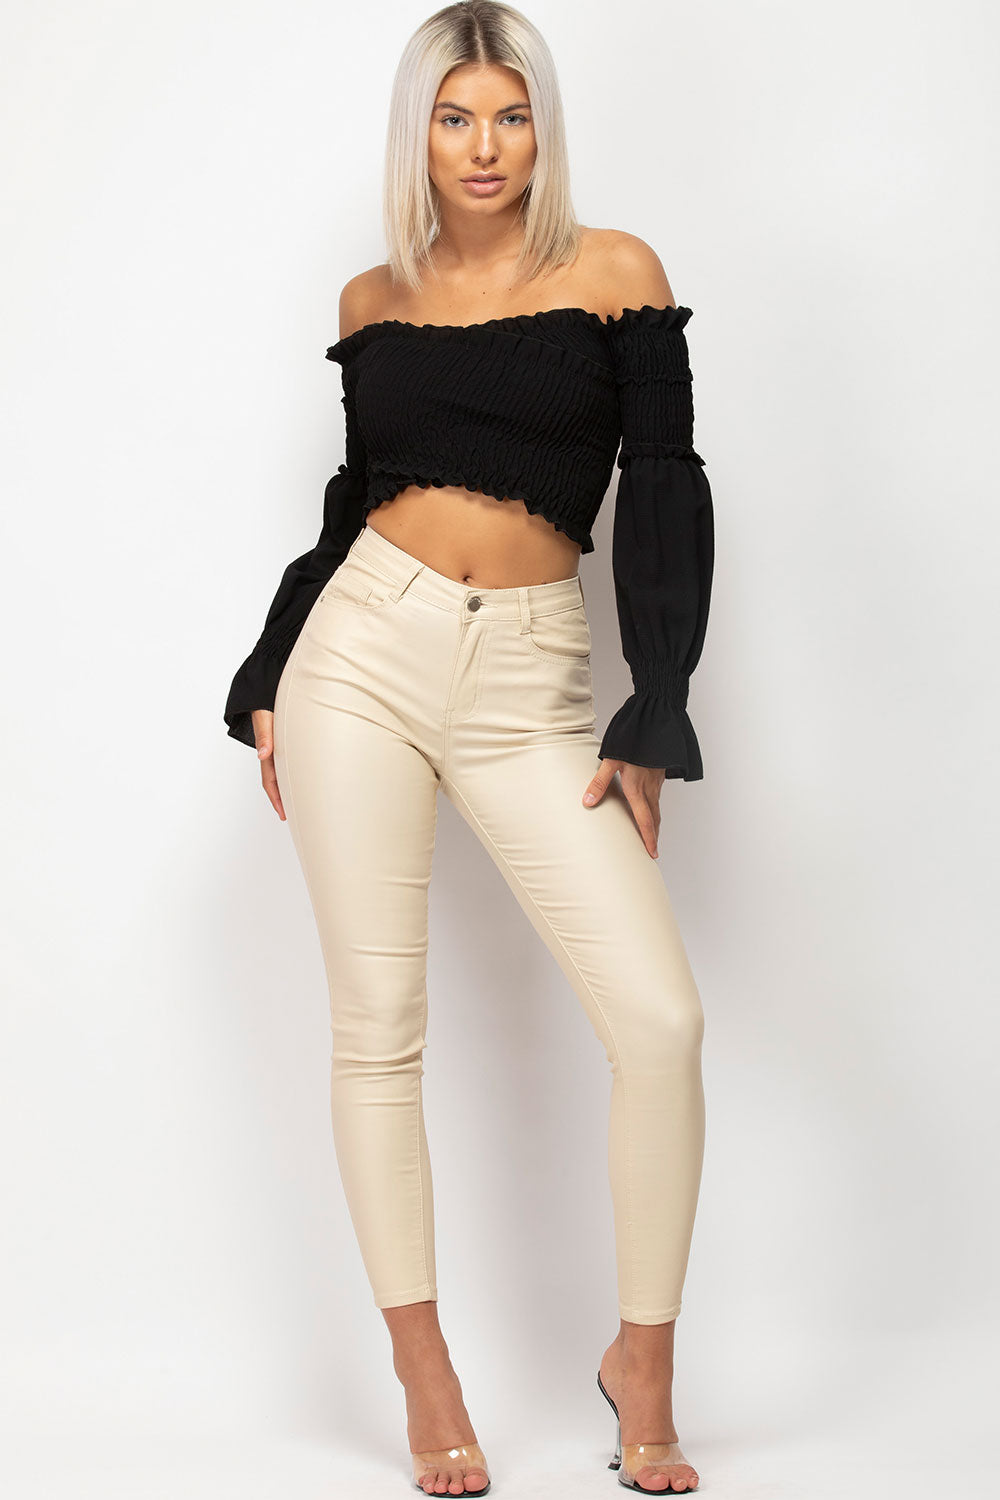 beige high waisted jeans